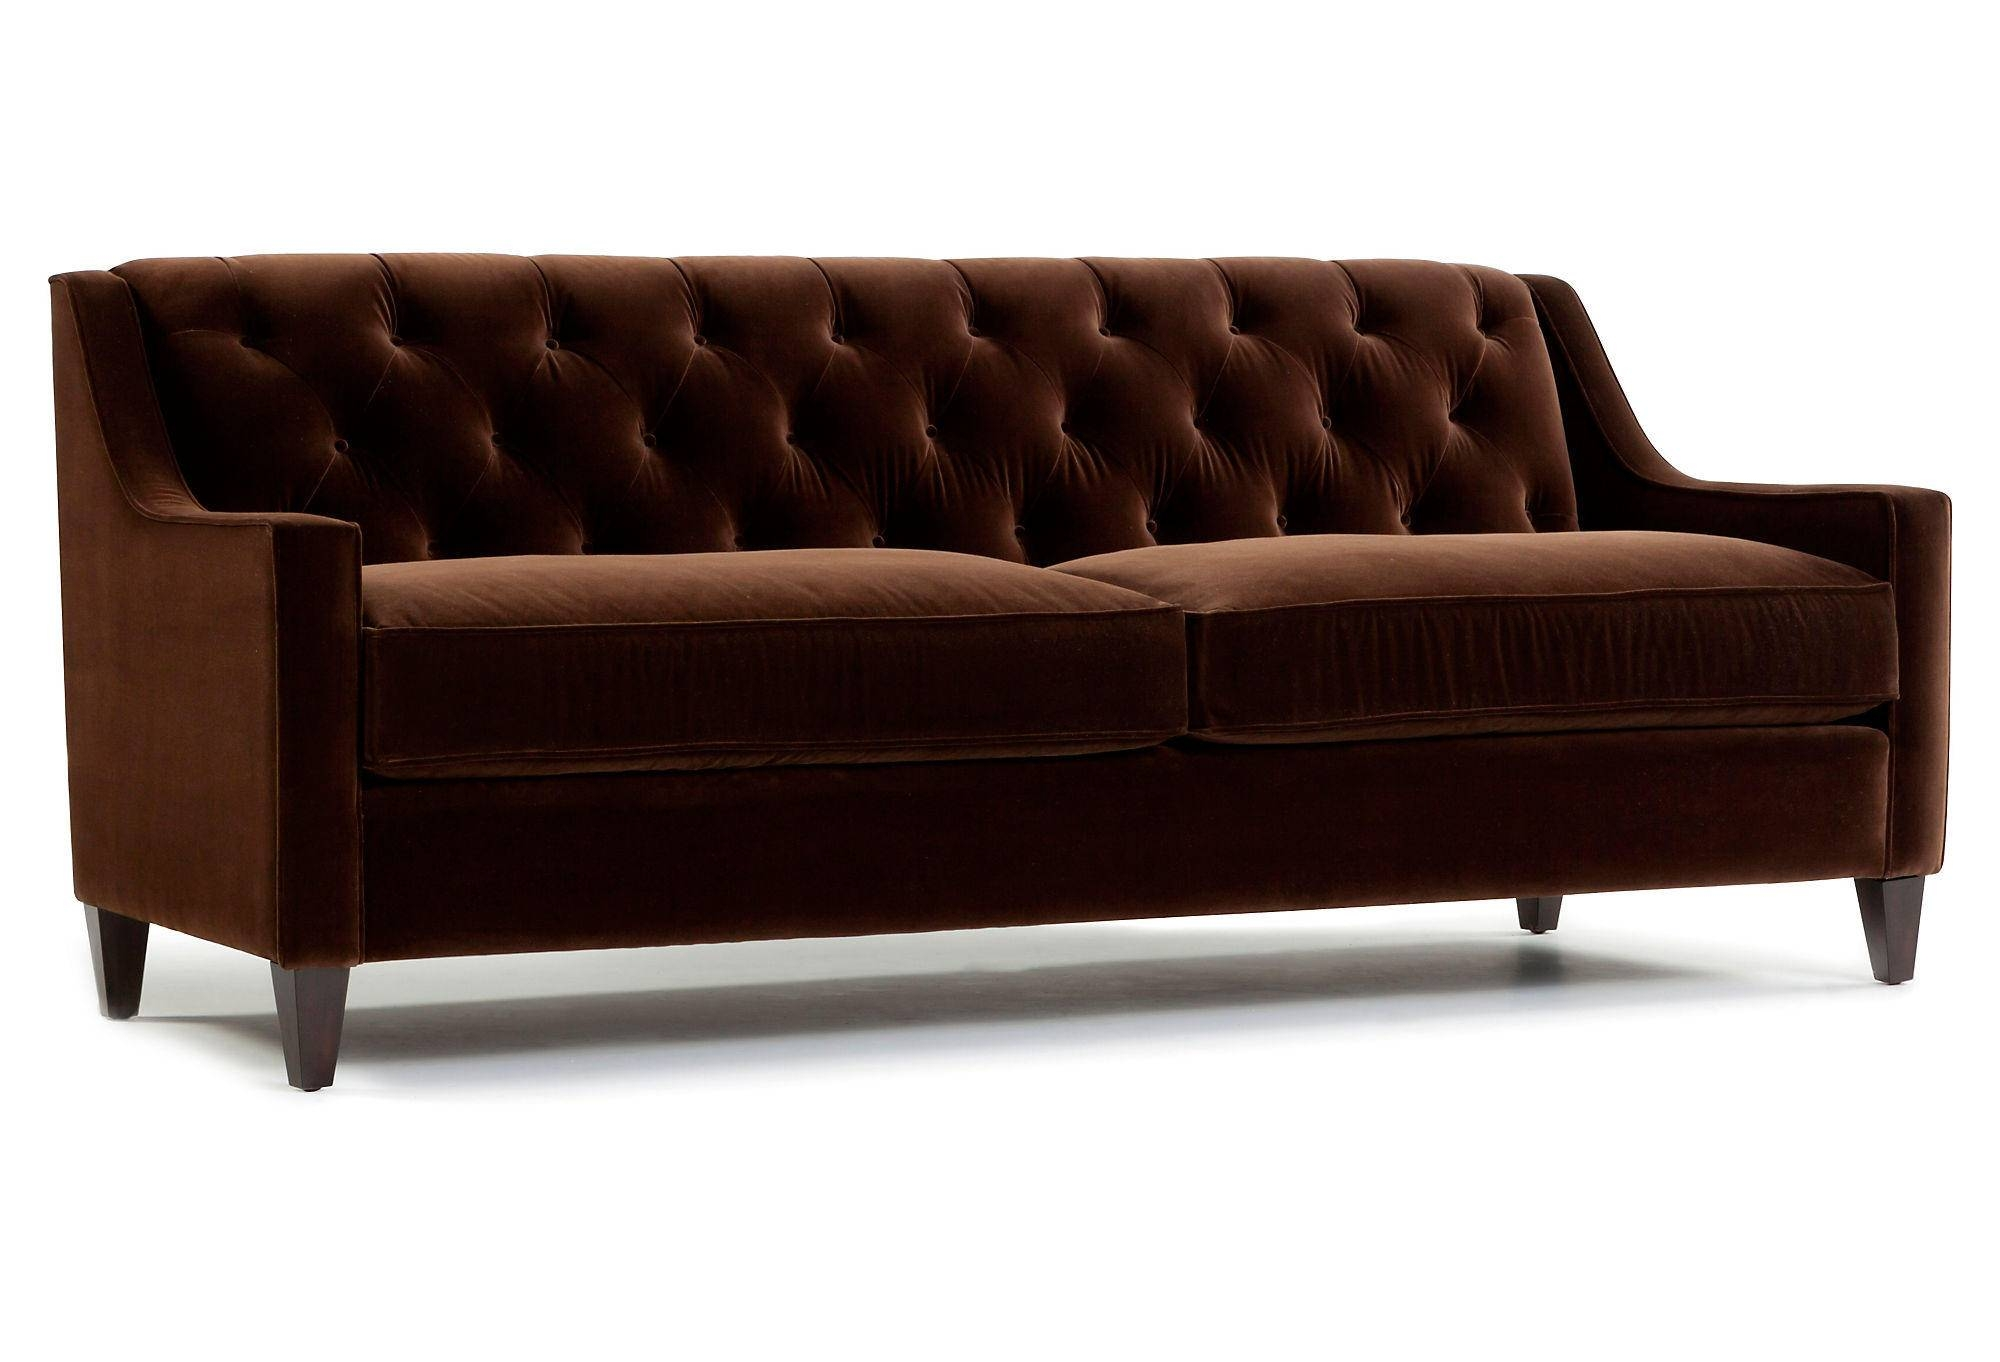 Dark Brown Velvet Tufted Sofa With Wooden Legs And 2 Cushions For with Brown Tufted Sofas (Image 7 of 15)